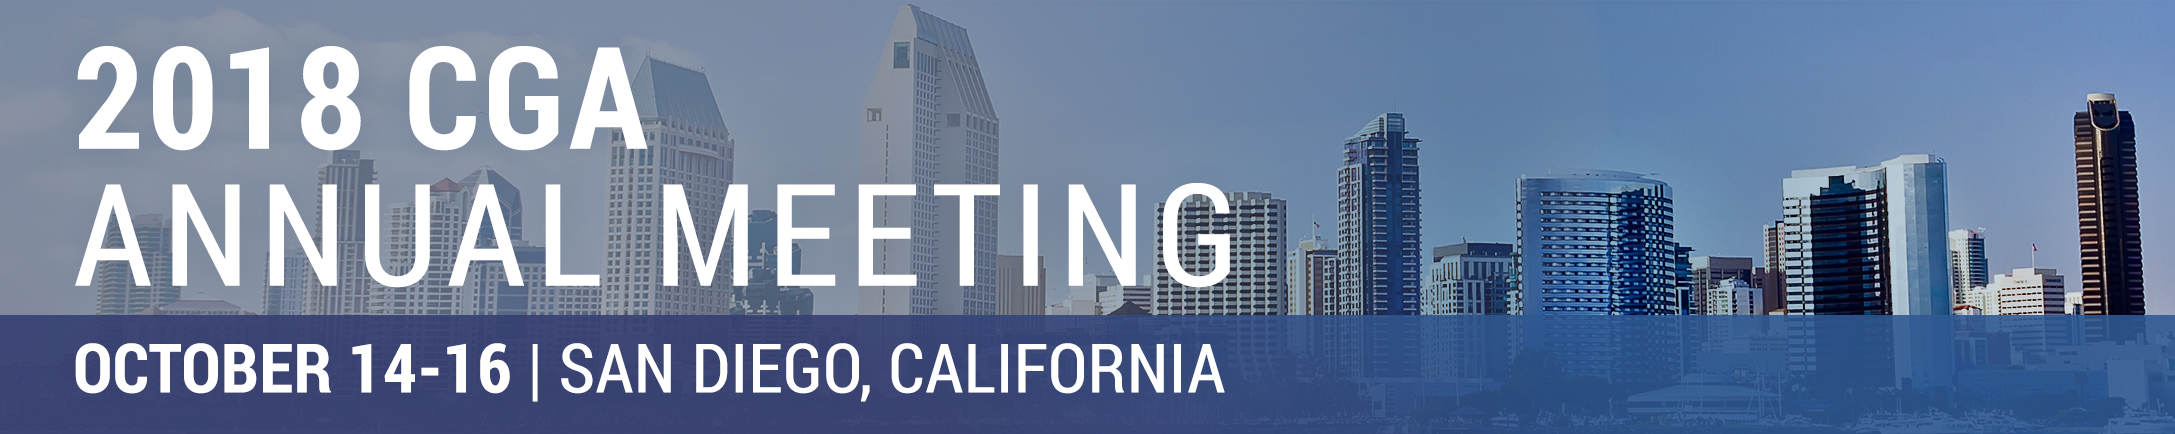 2018 CGA Annual Meeting